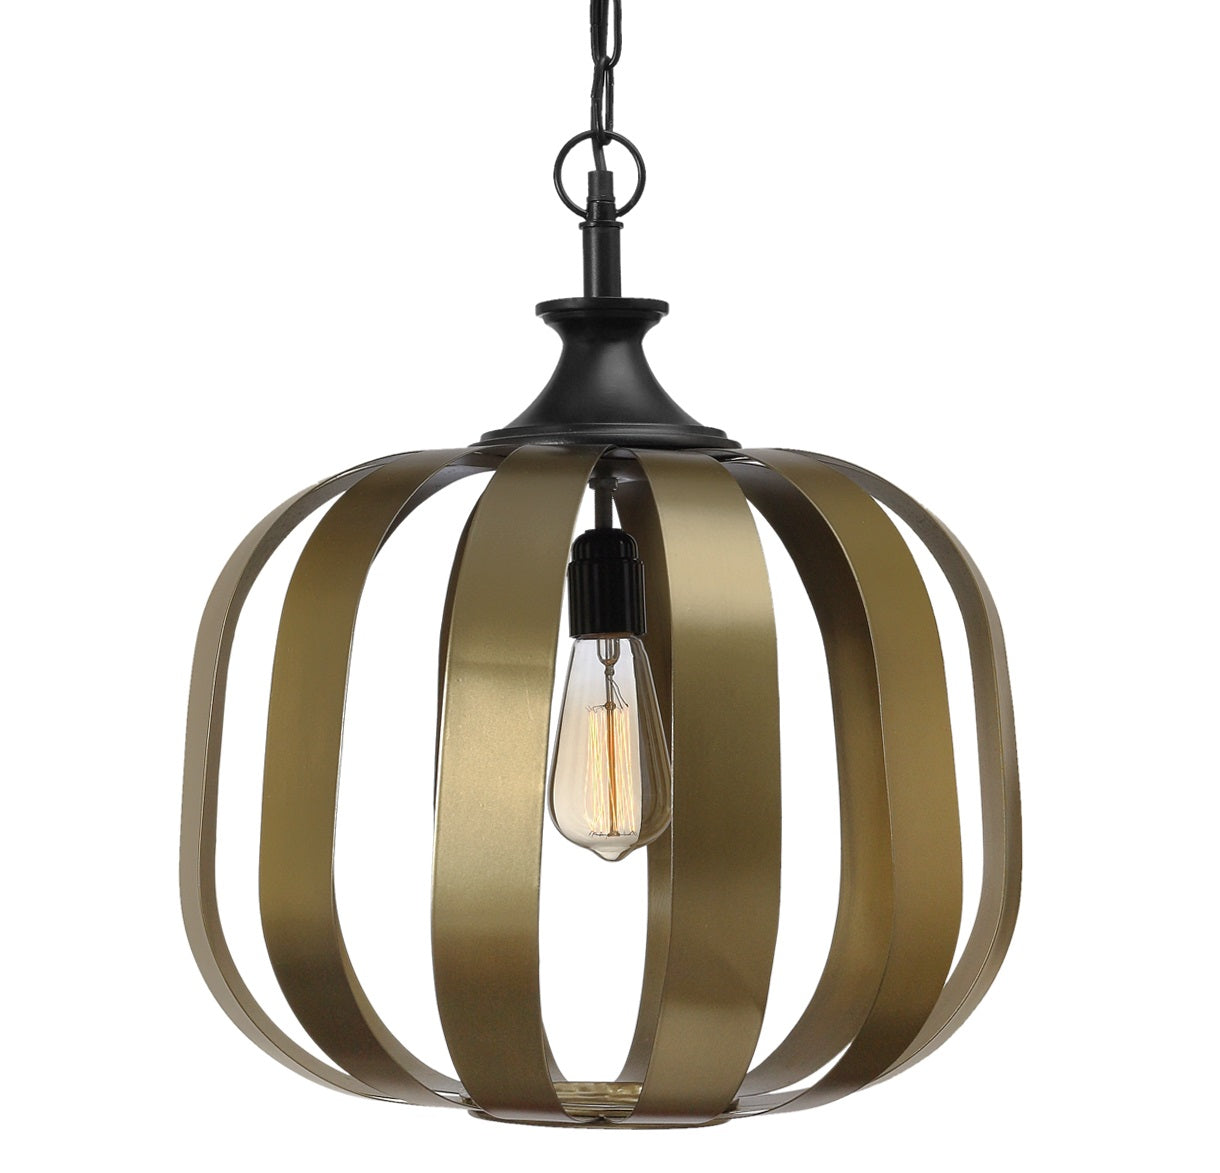 Berlin Handcrafted Antique Brass Pendant Light